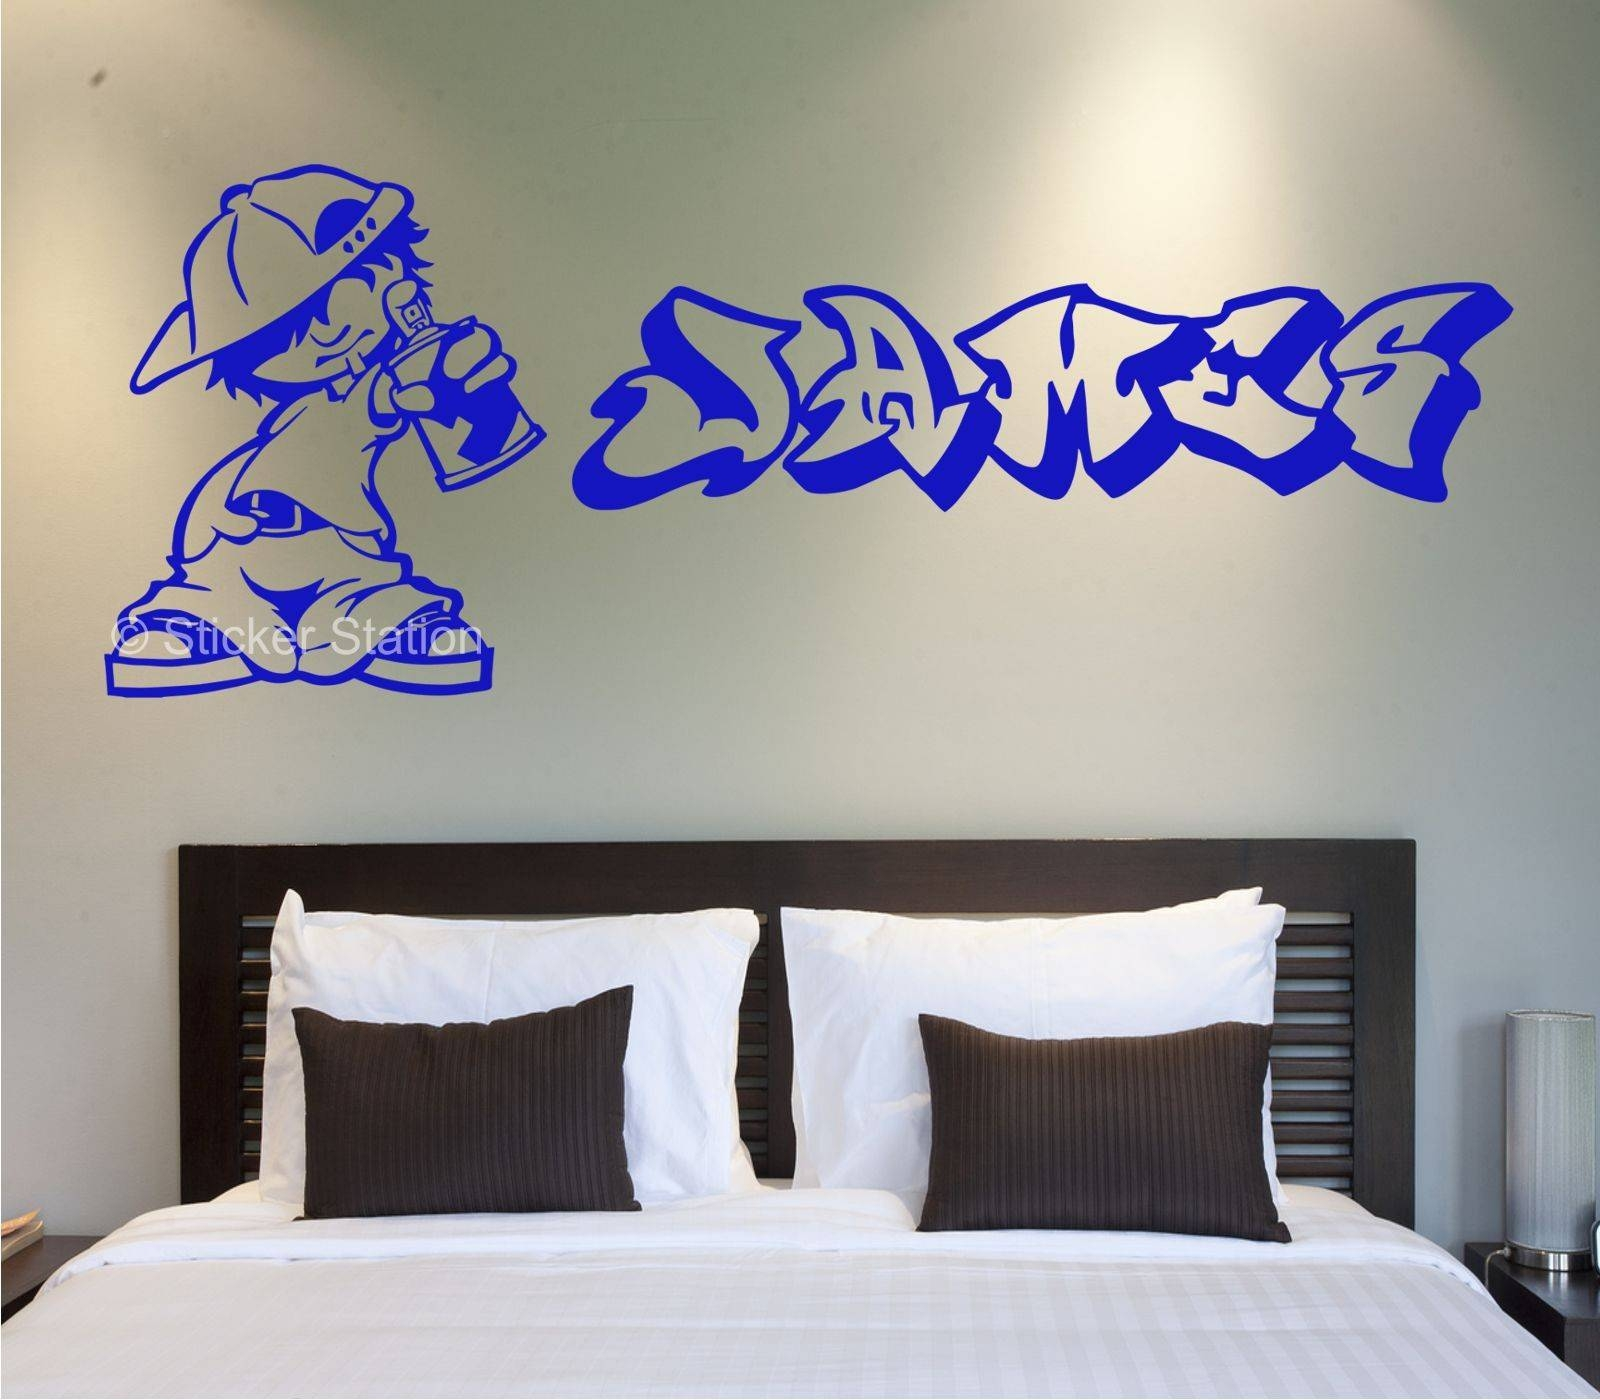 Graffiti Artist Personalised Wall Art Sticker – Sticker Station Throughout Recent Graffiti Wall Art Stickers (View 8 of 30)